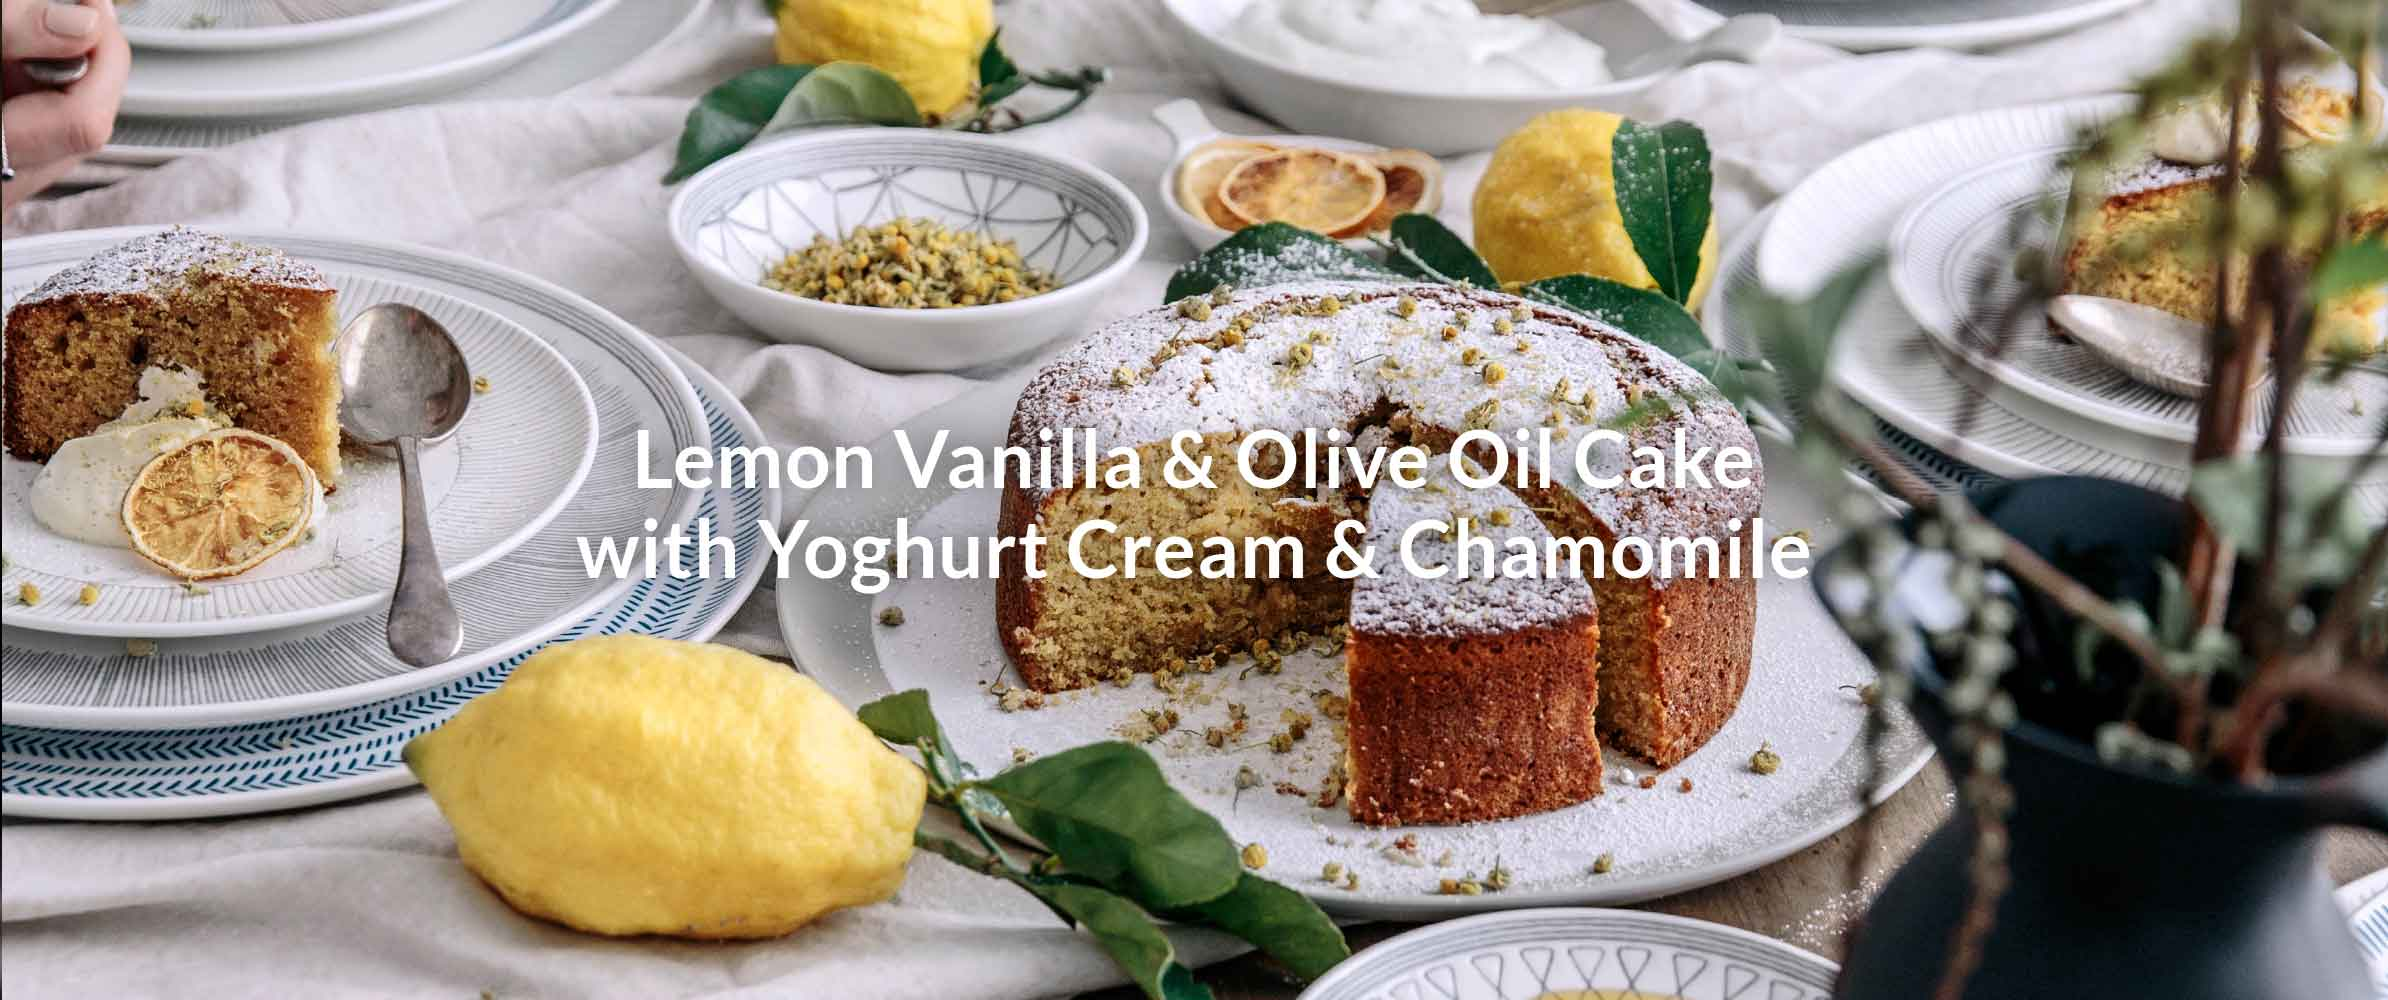 Lemon Vanilla & Olive Oil Cake with Yoghurt Cream & Chamomile